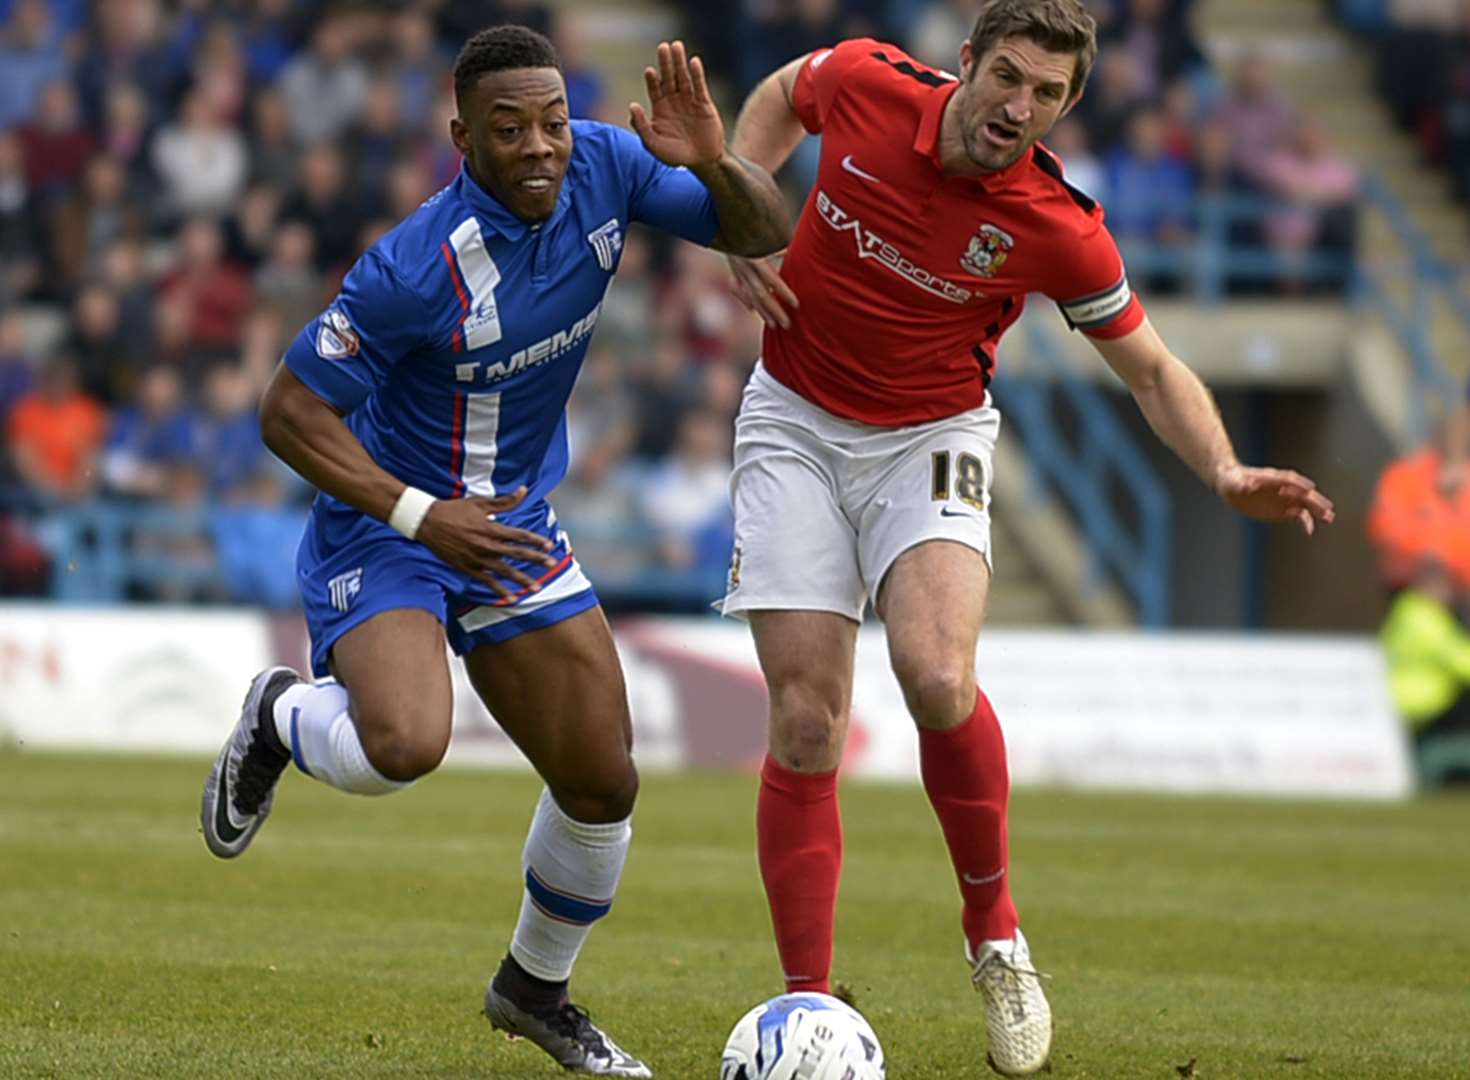 Gillingham v Coventry City - in pictures